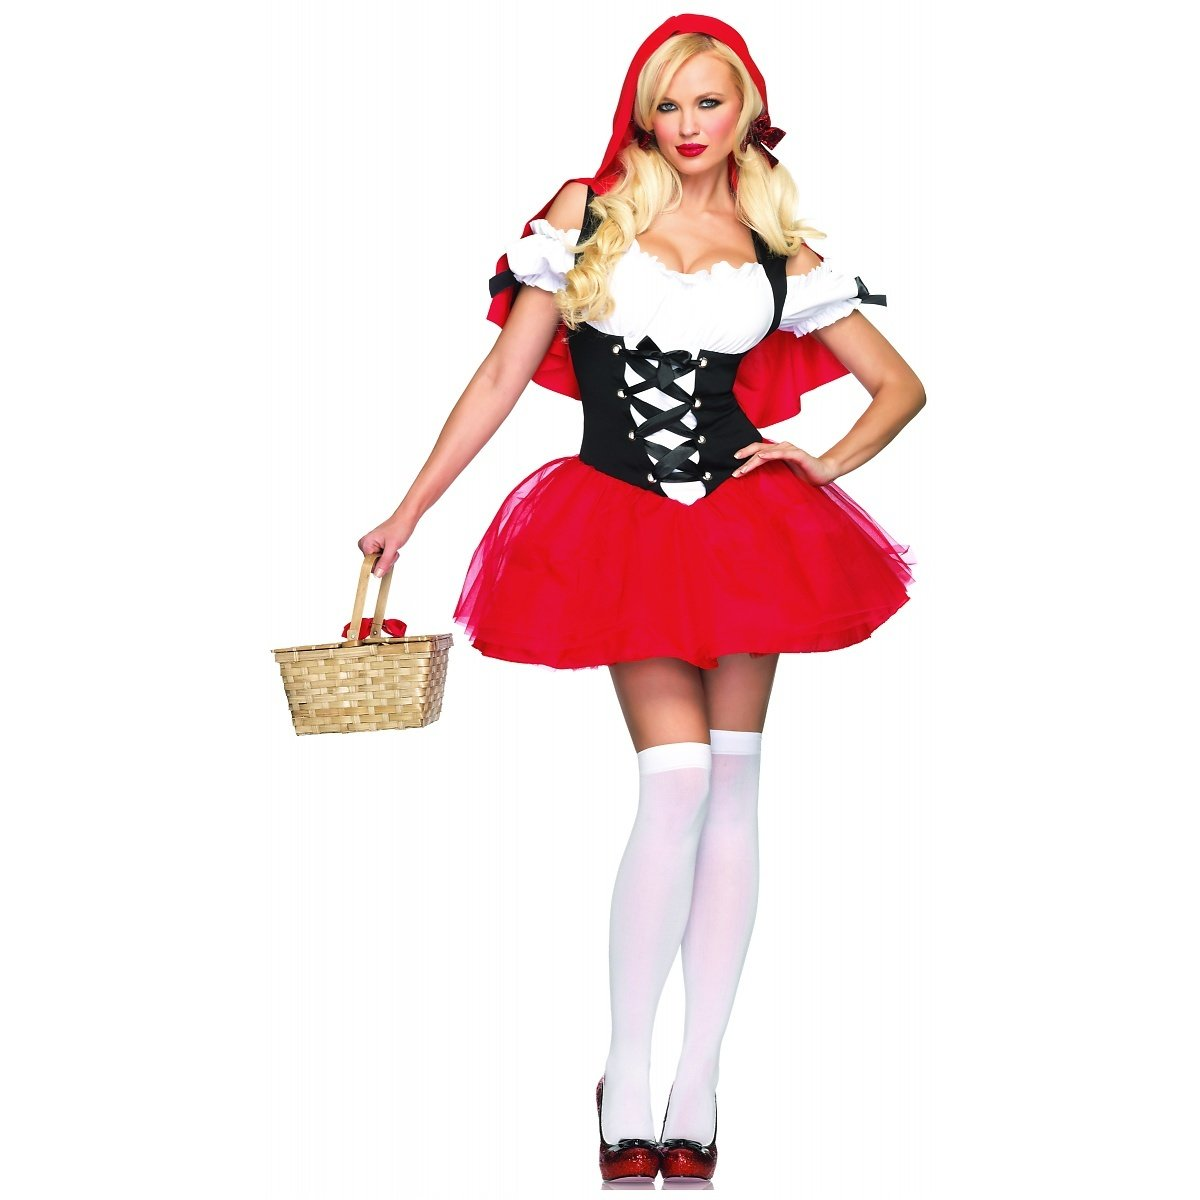 Leg Avenue Women' S Racy Red Riding Hood Tutu Peasant Dress With Attached Hooded Cape Leg Avenue Costumes